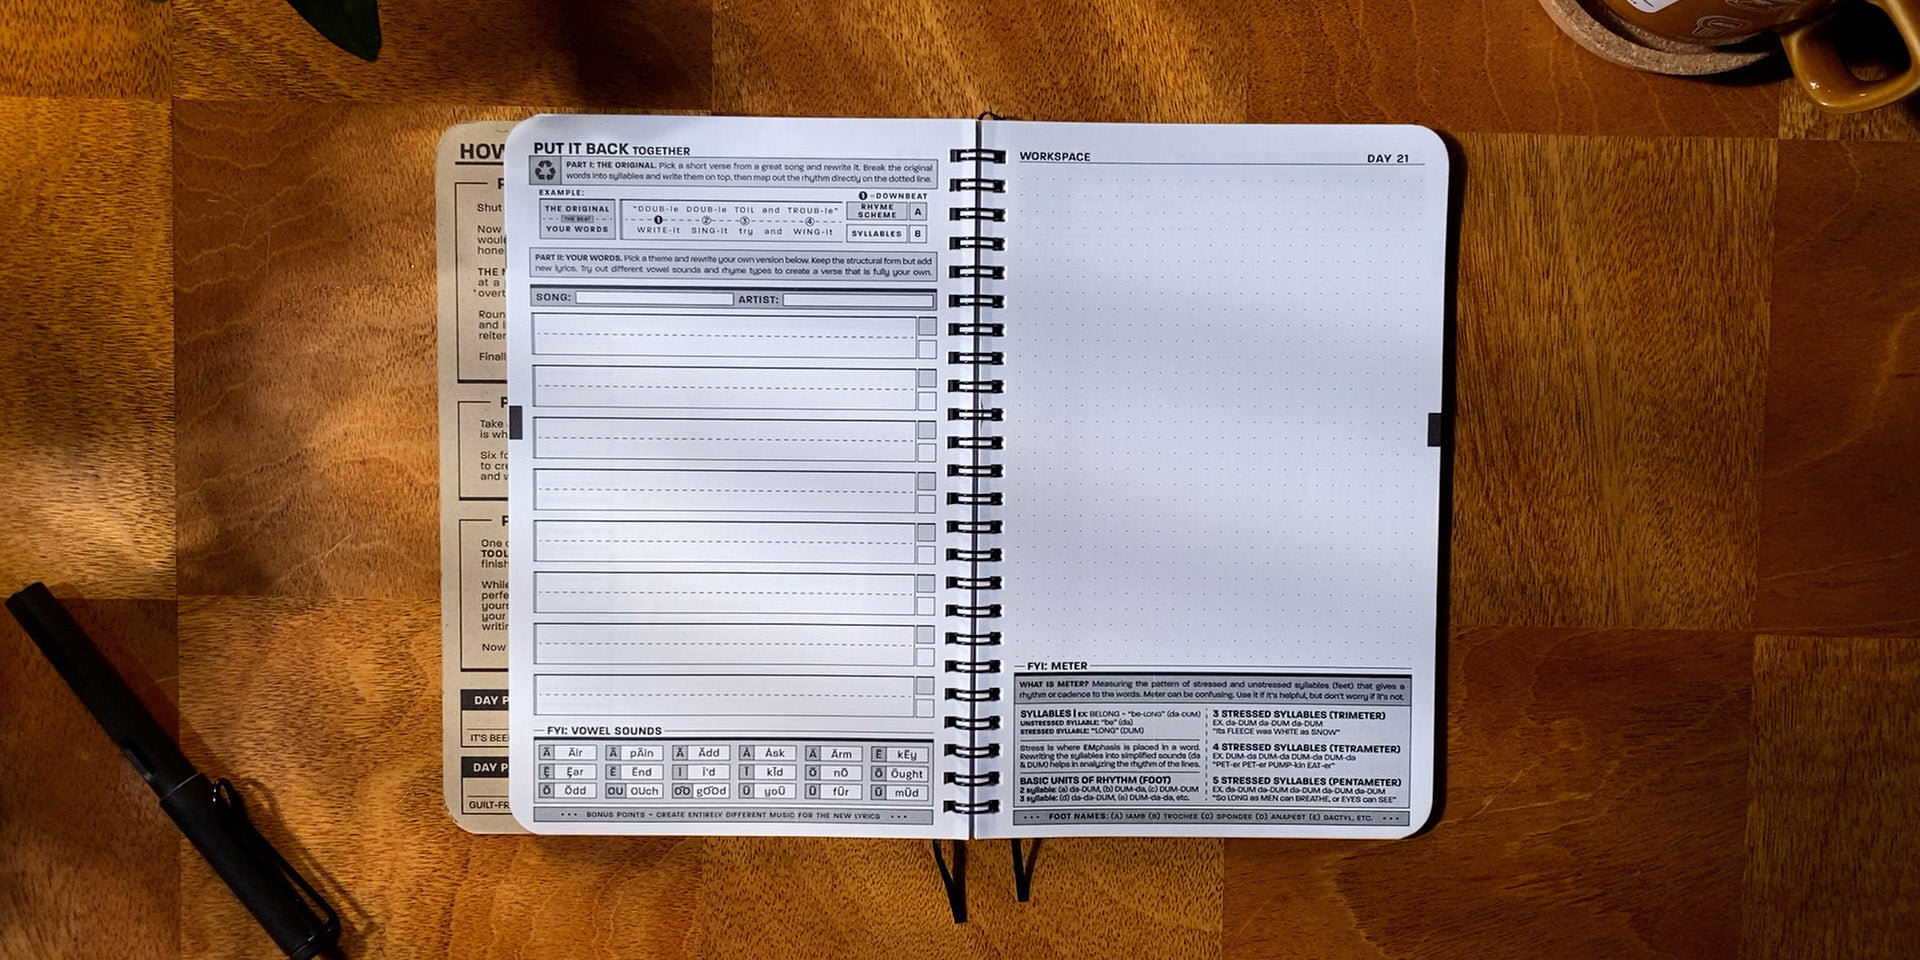 Practice Workbook open to the Put It Back Exercise